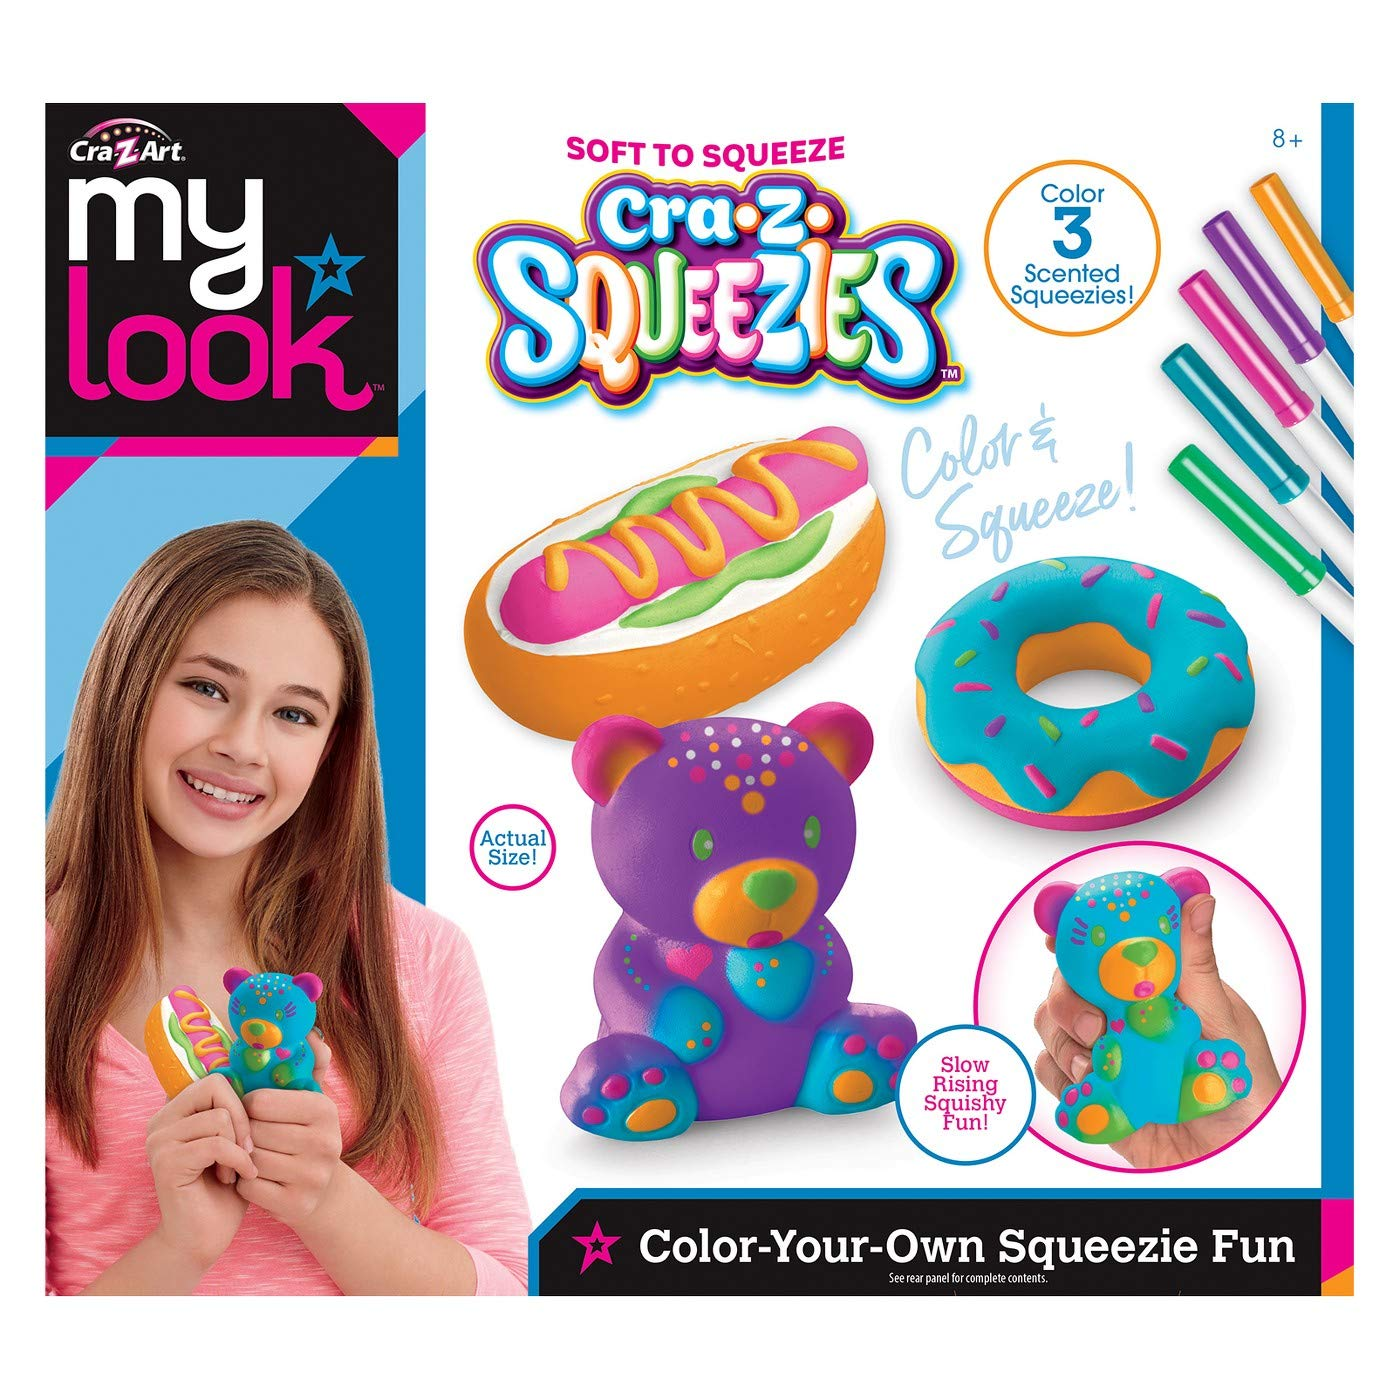 Color Your Own Squeezie Fun CRA-Z-Art My Look